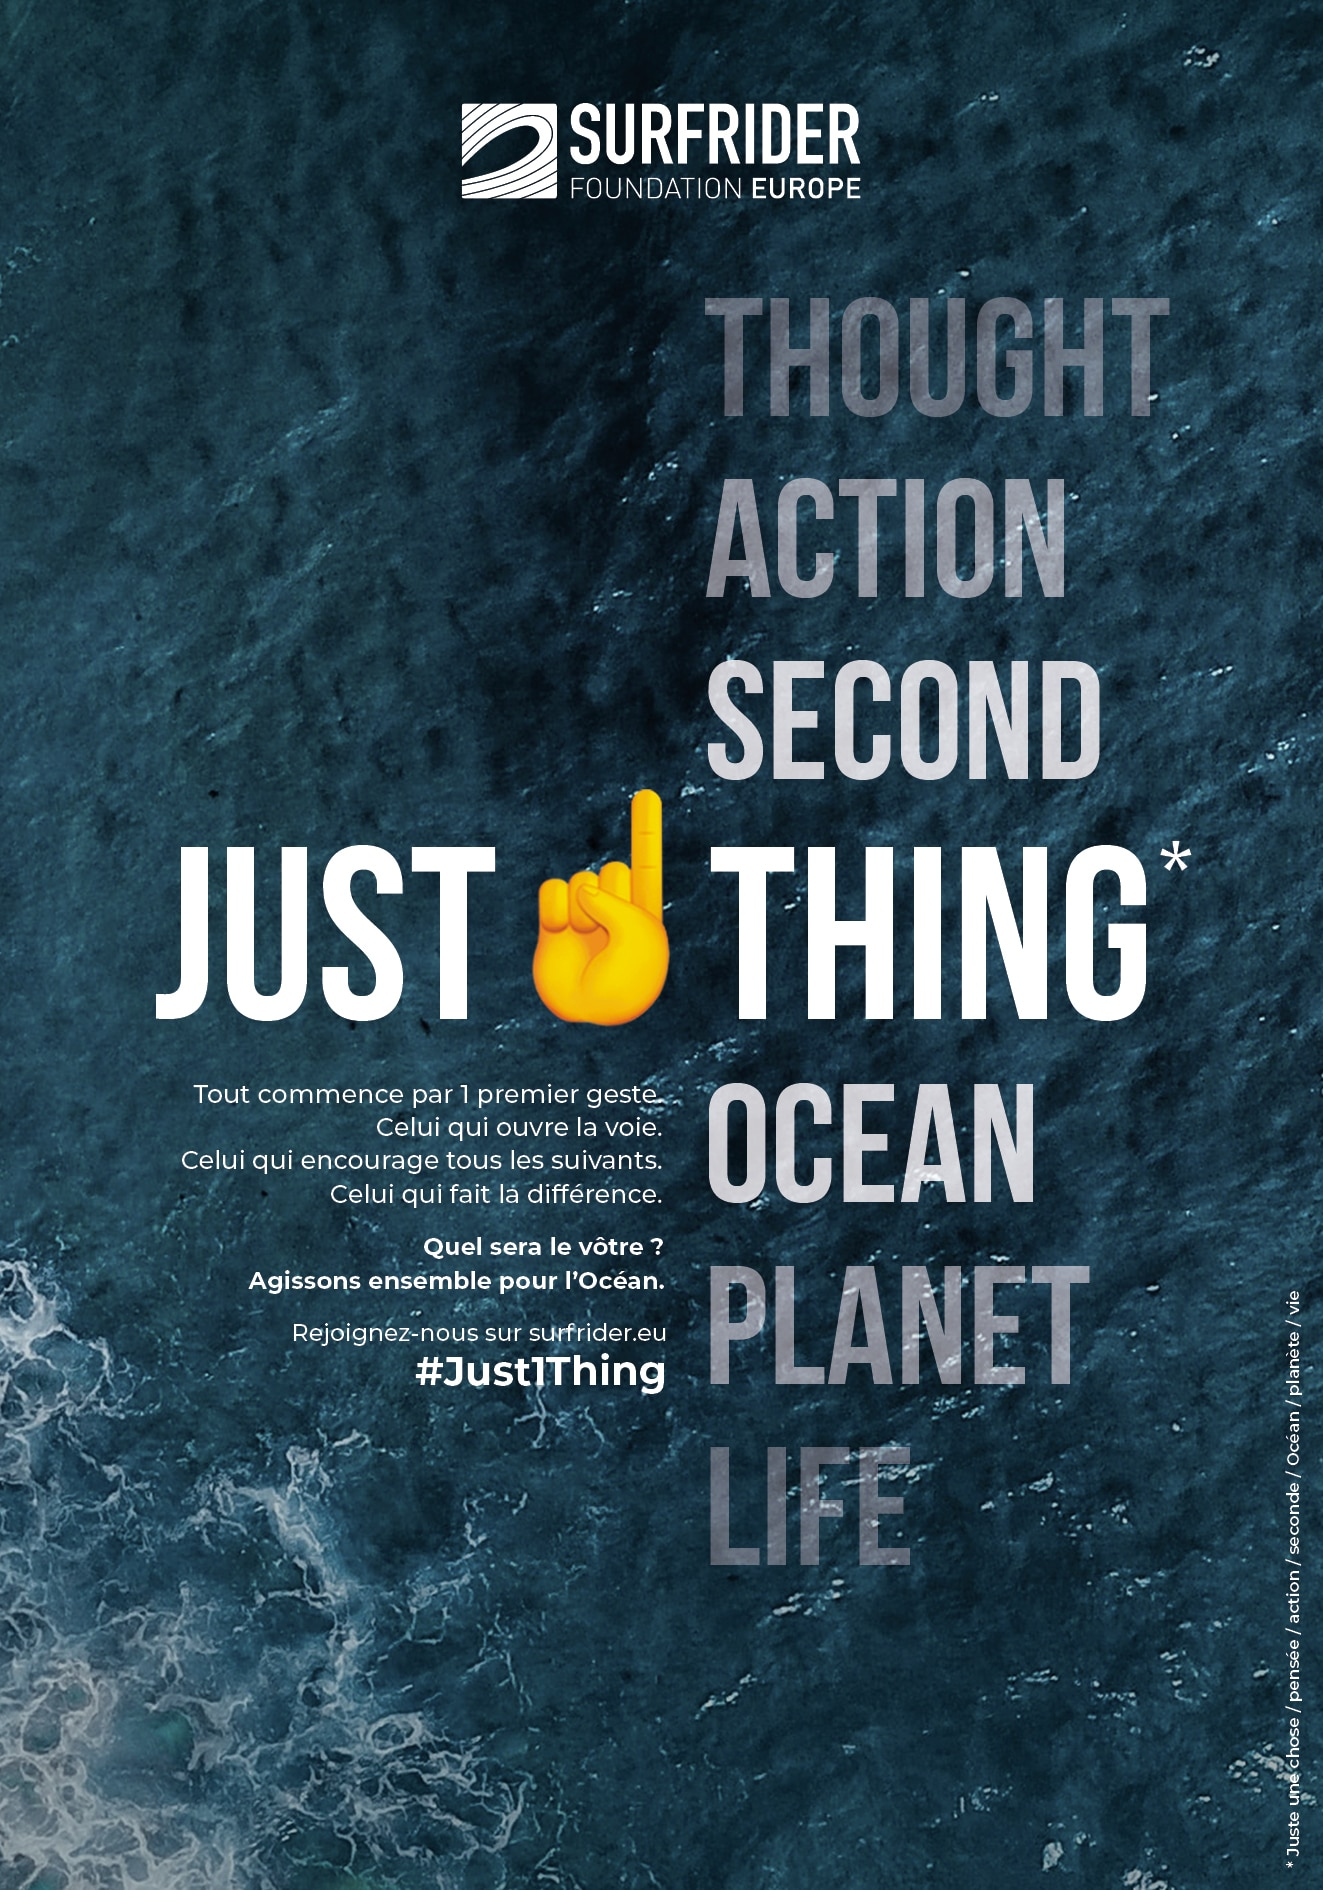 Just1thing for the planet life ocean Surfrider fundation Europe